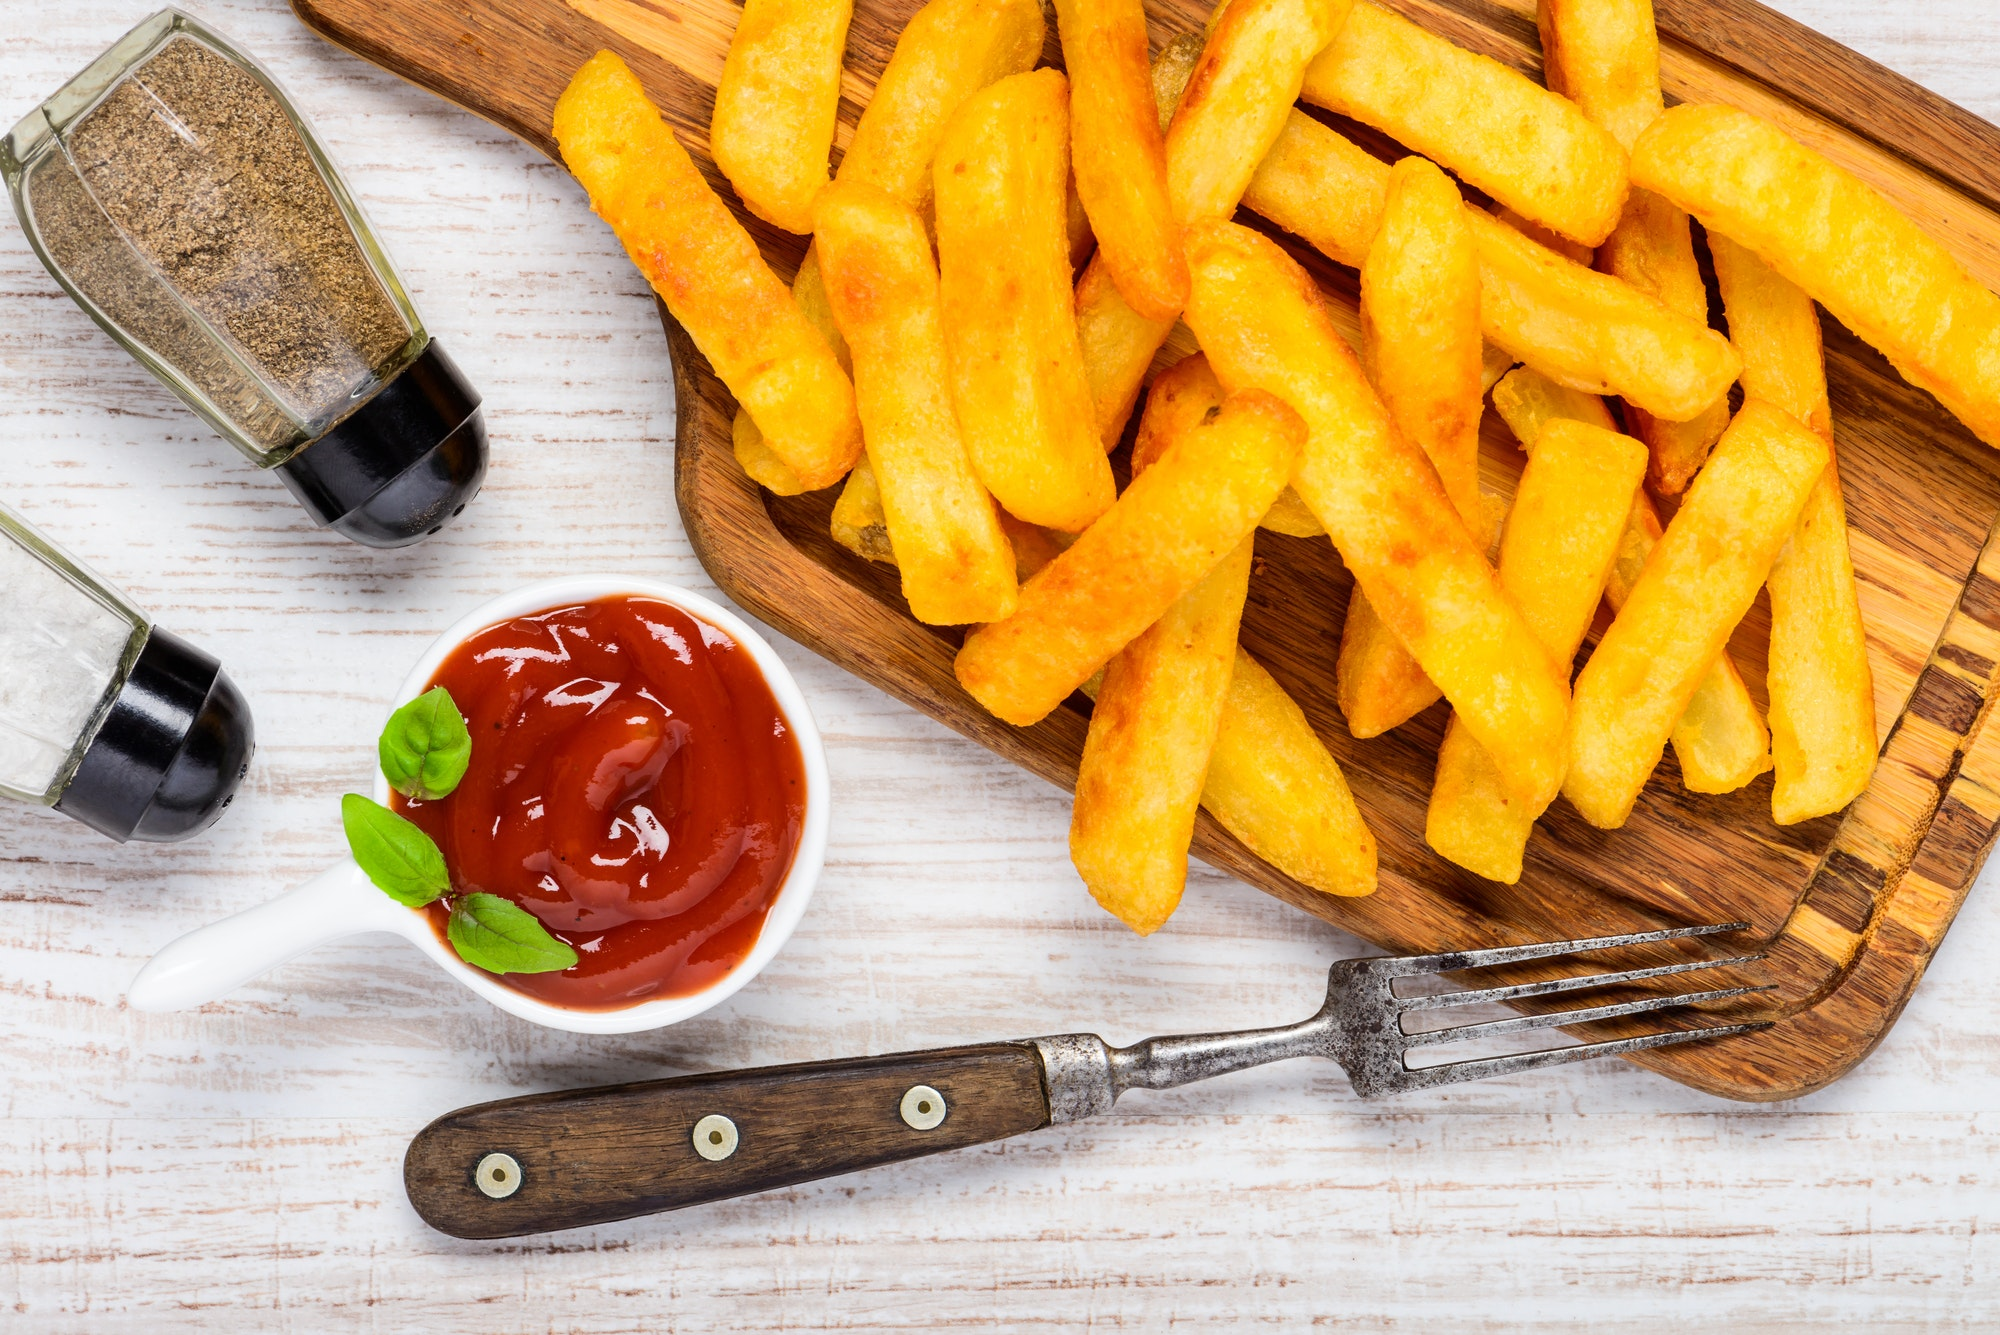 French Fries With Condiments and Ketchup